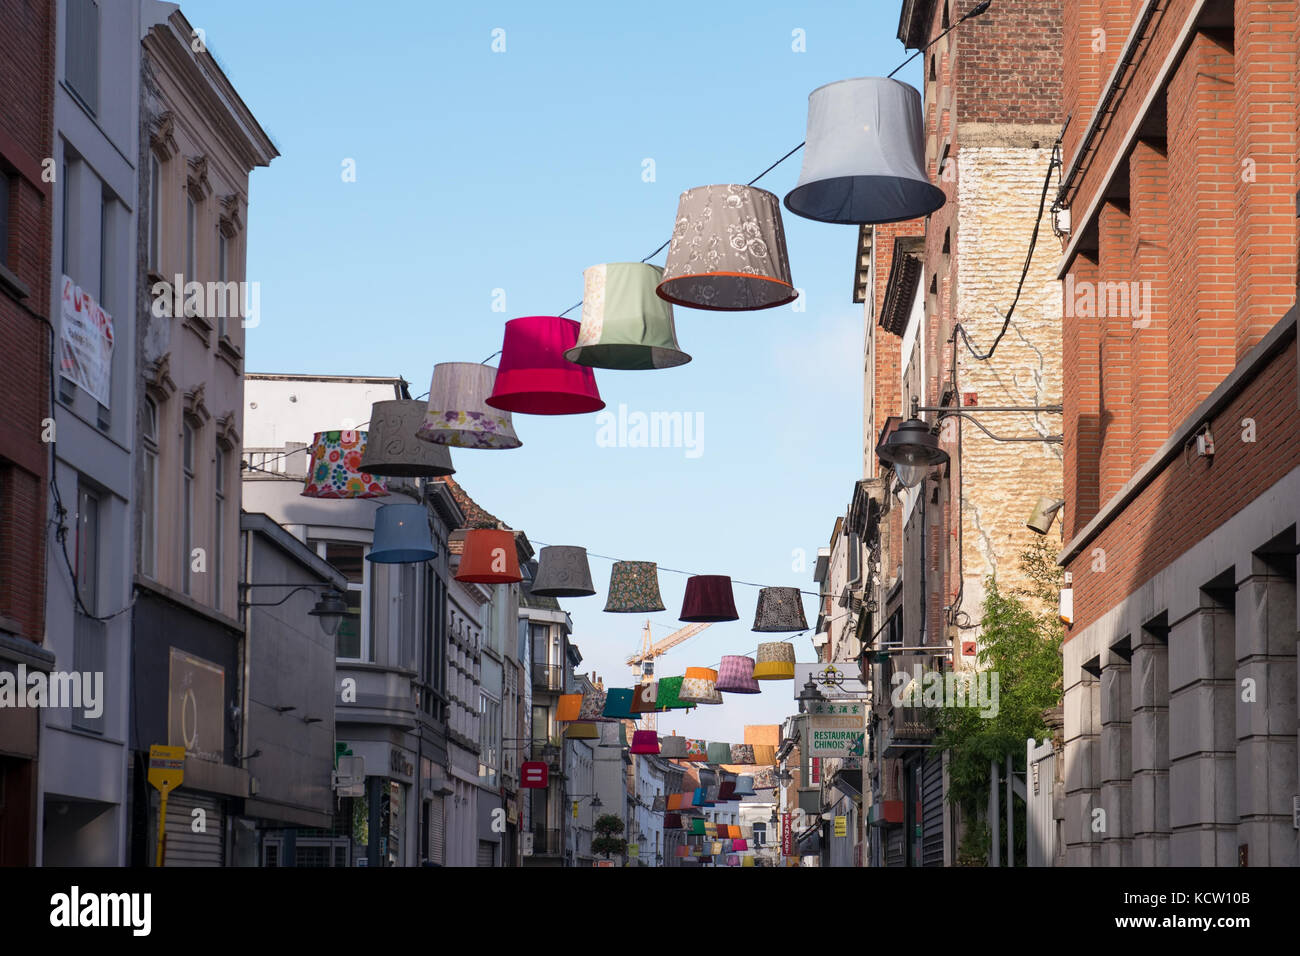 Street in center of the city decorated with giant lamp shades on street in center of the city decorated with giant lamp shades on october 8 2017 in mons belgium aloadofball Choice Image